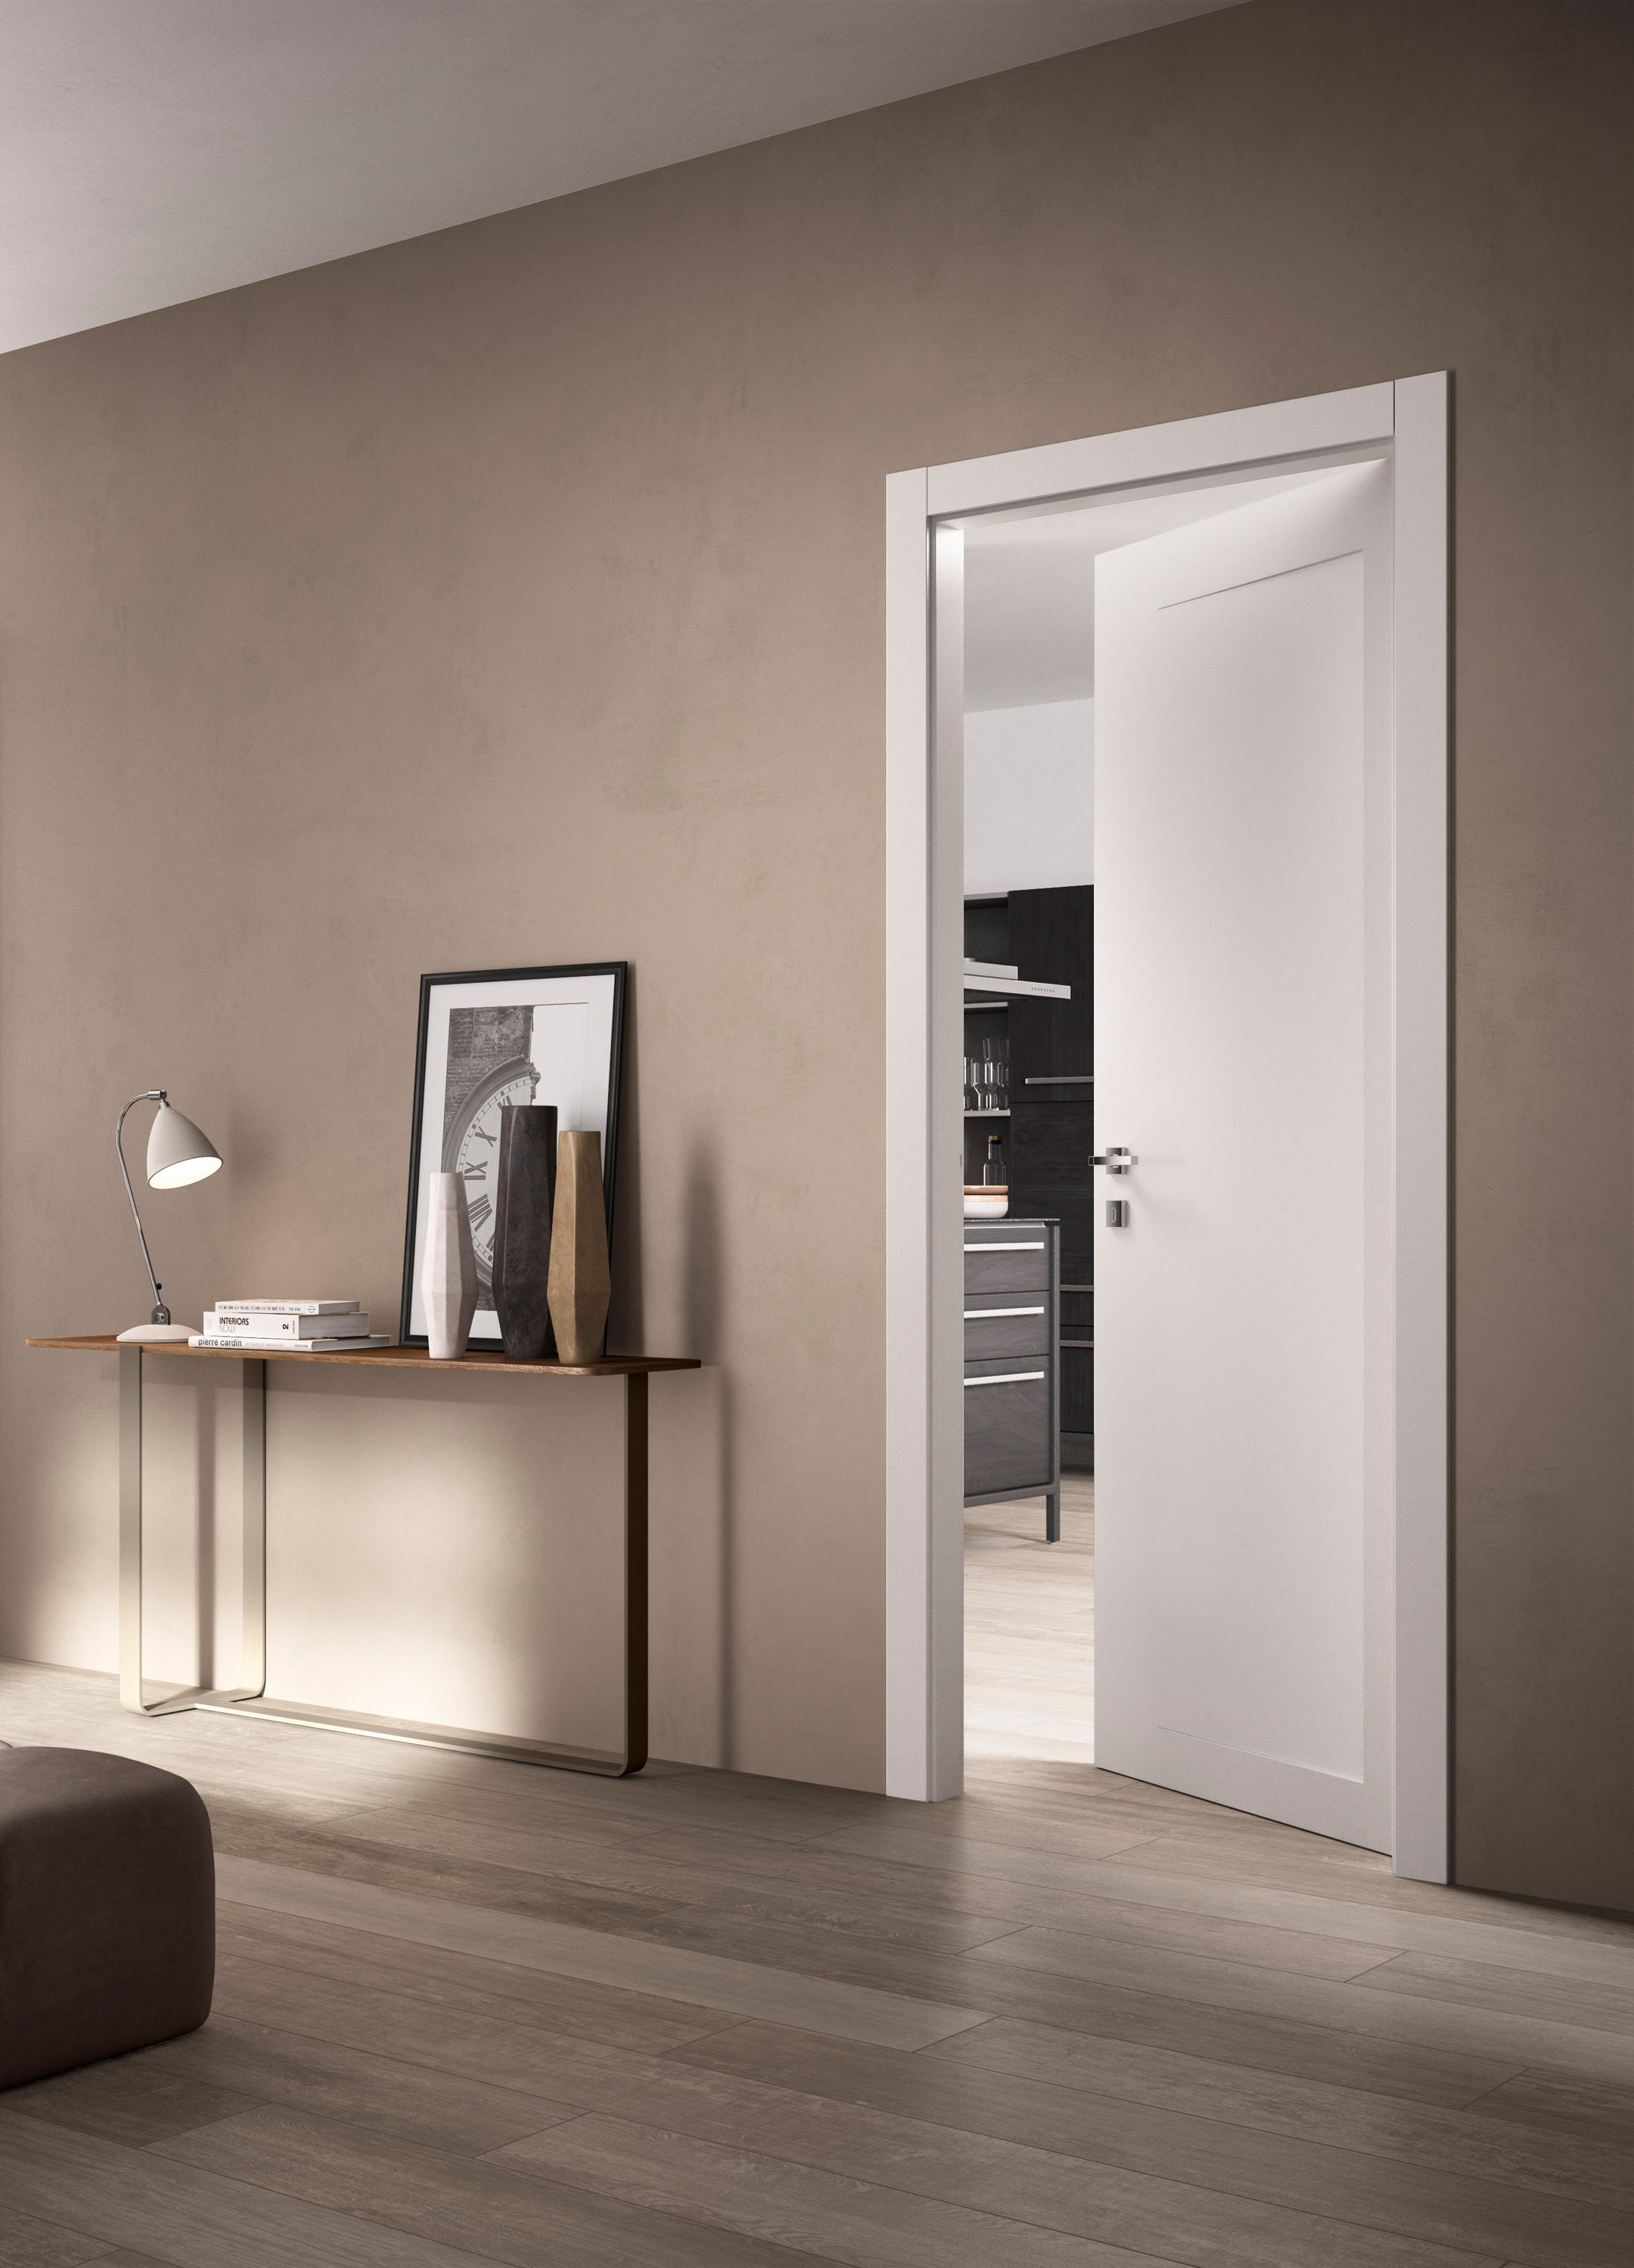 SUITE /9 - Porte per interni FerreroLegno | Architonic